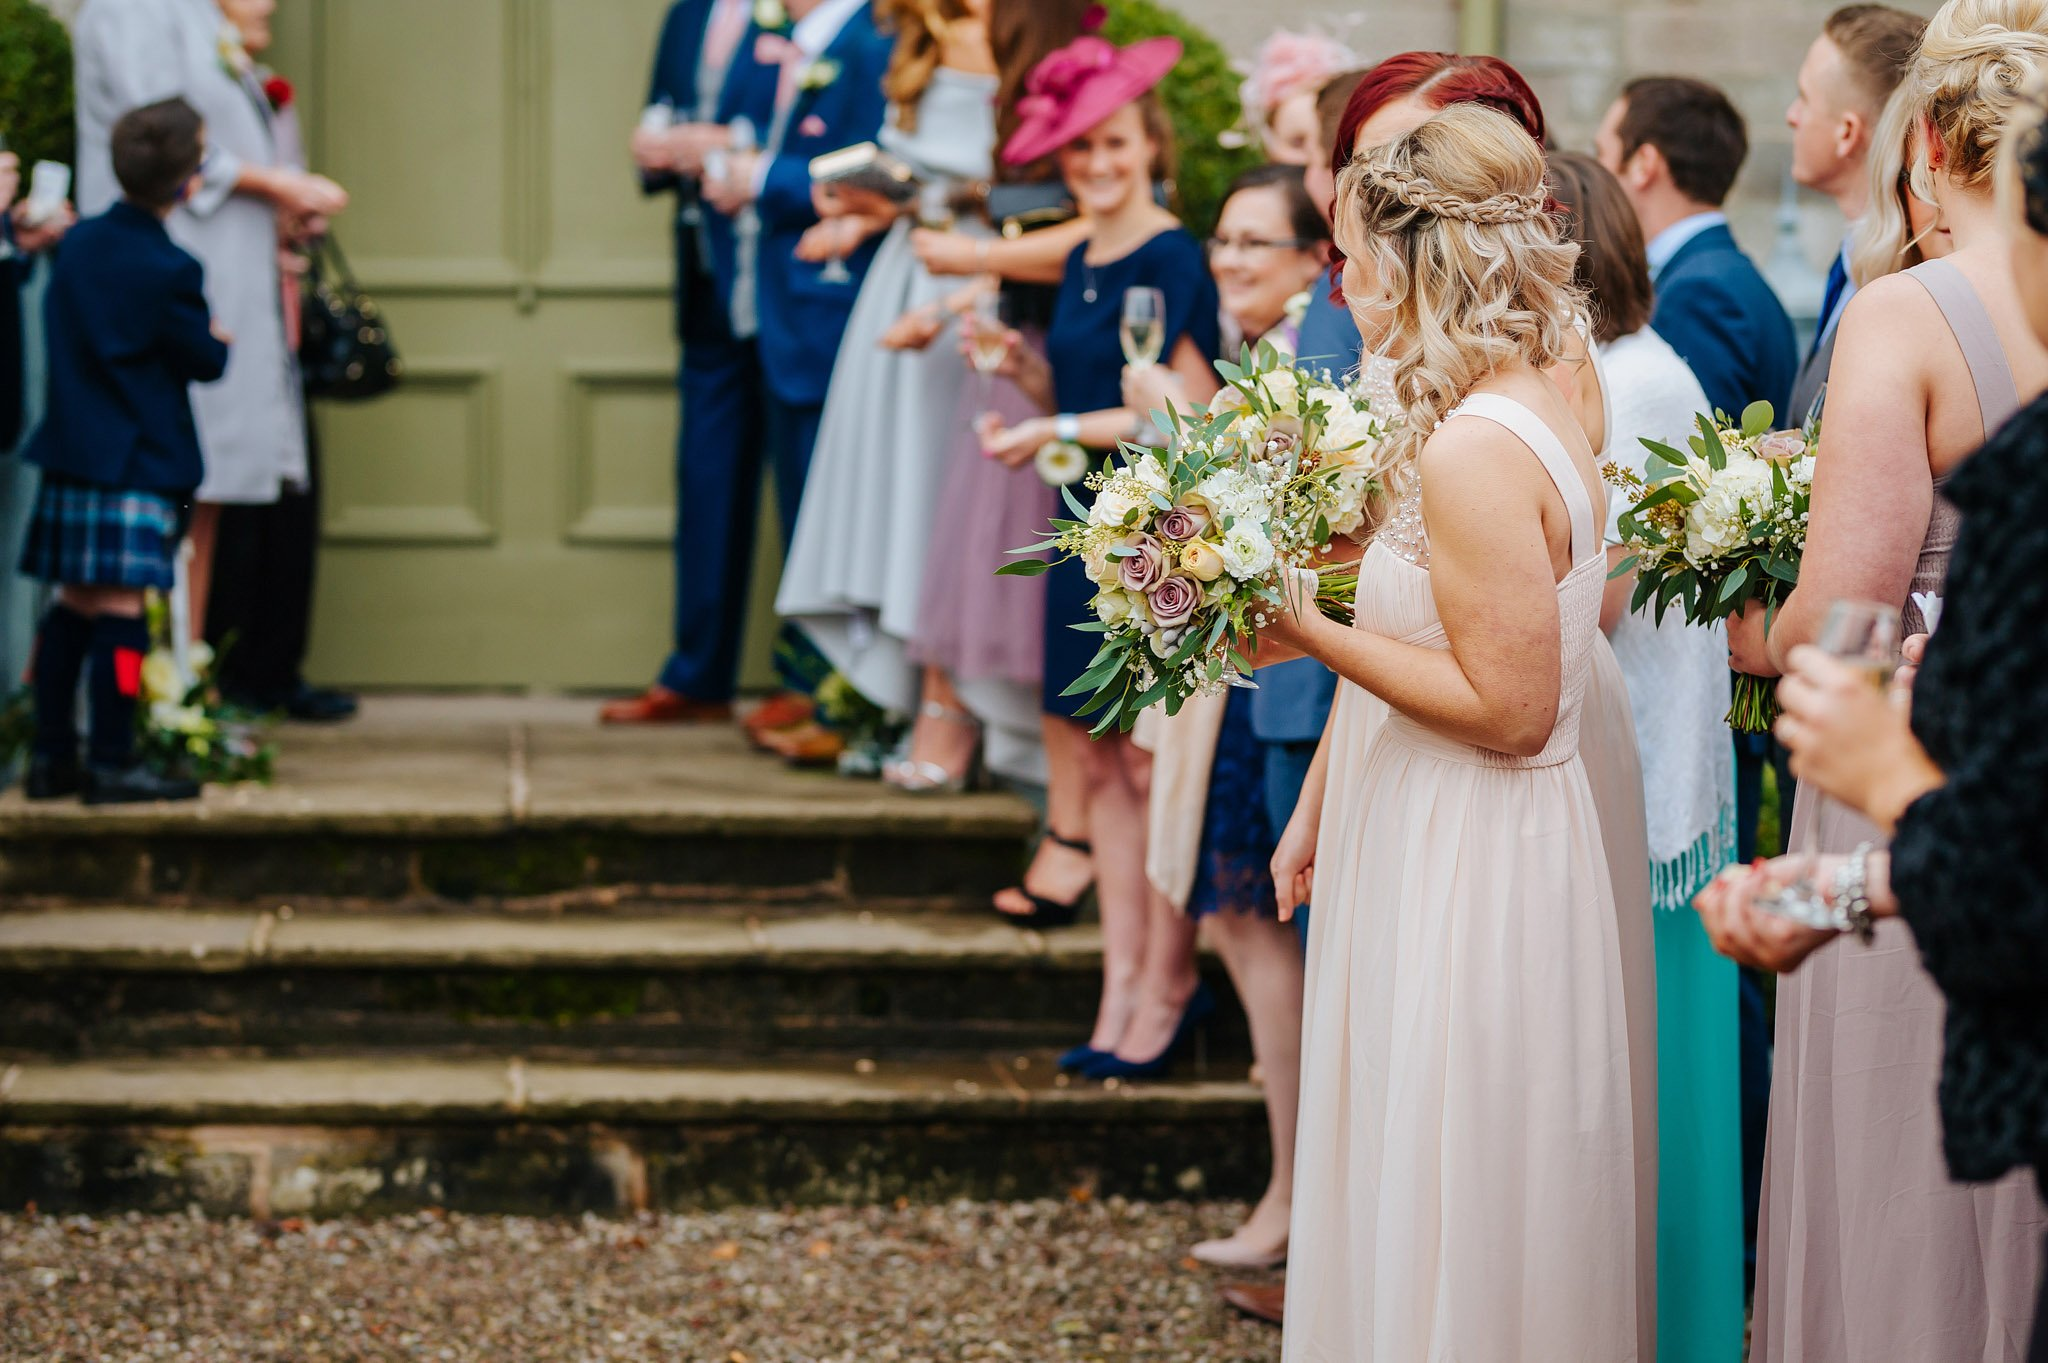 Lemore Manor wedding, Herefordshire - West Midlands | Sadie + Ken 37